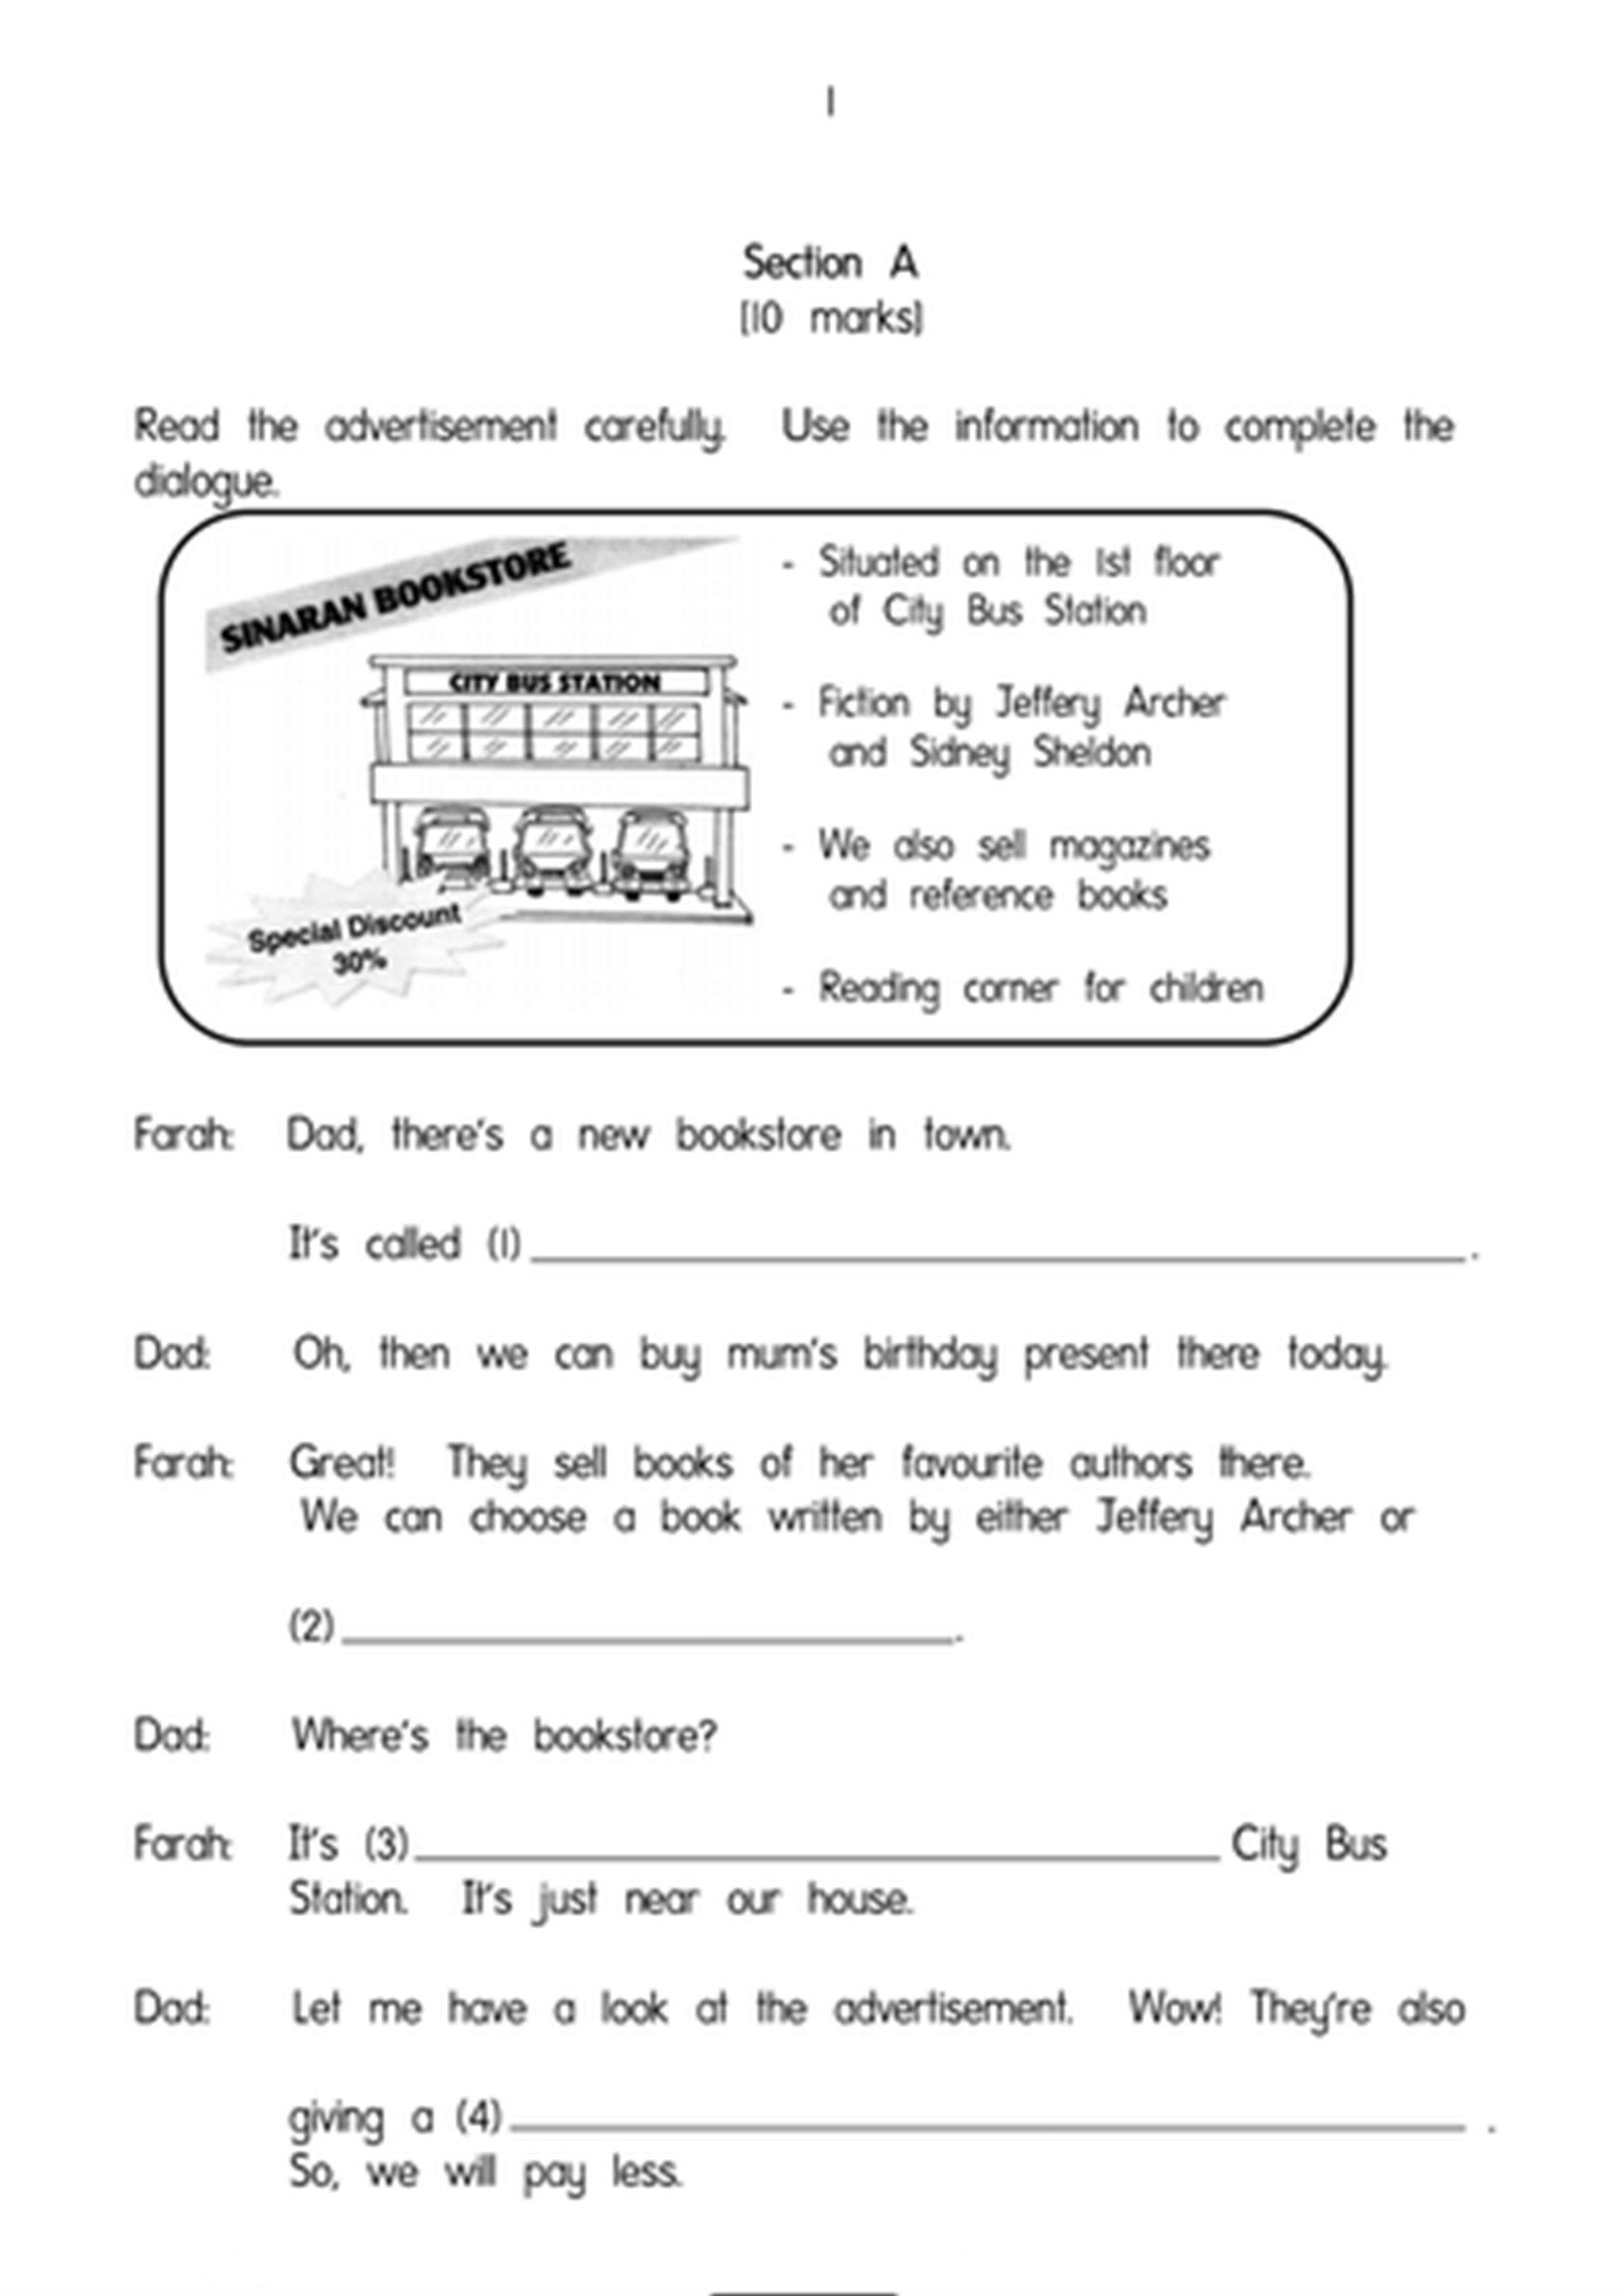 Sample Test Paper For English Kssr Year 6 Latest Format